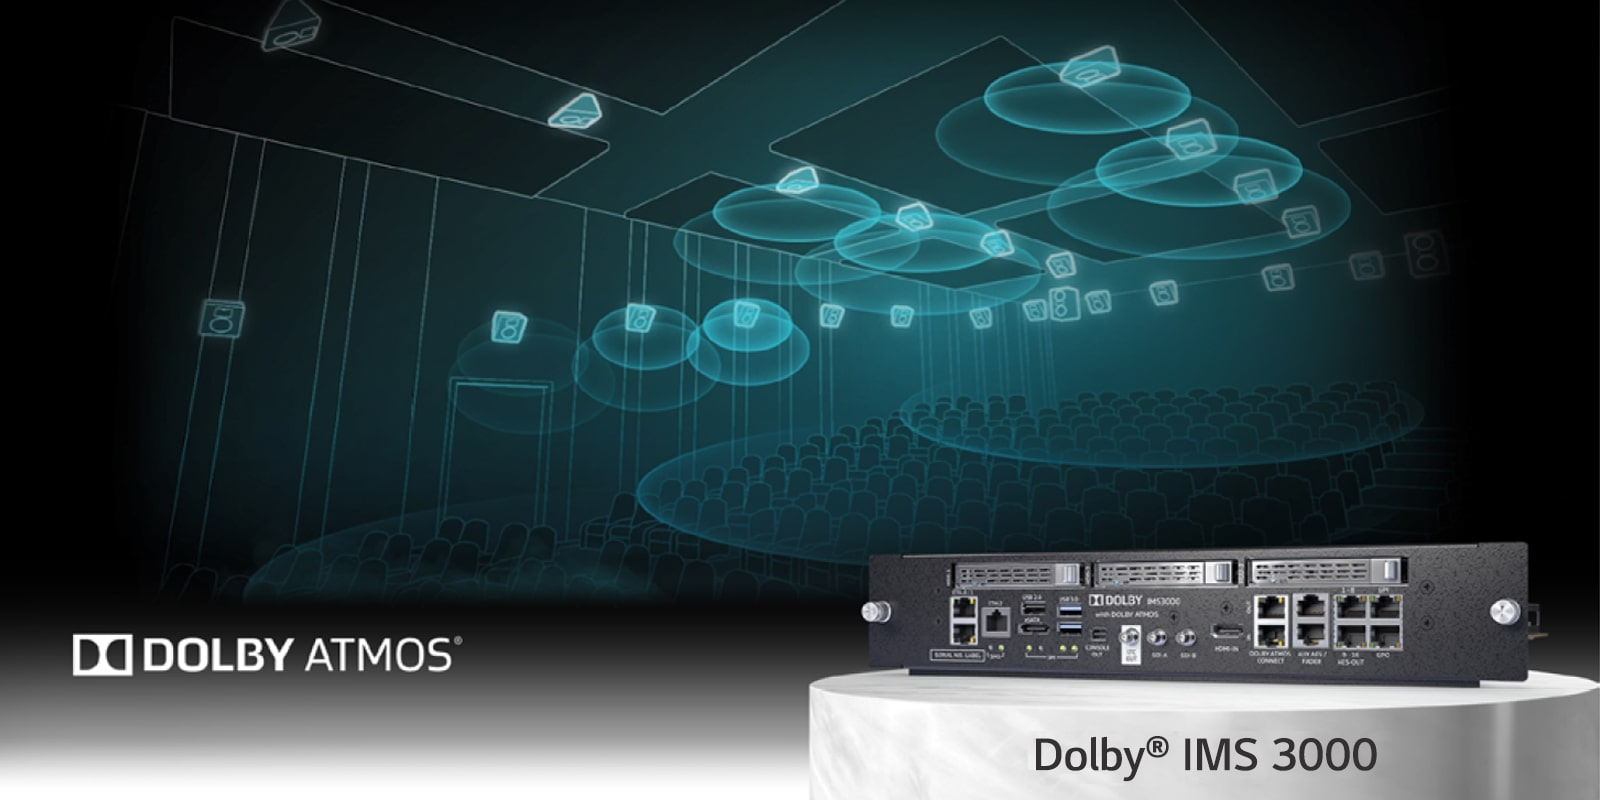 Compatibility with Dolby